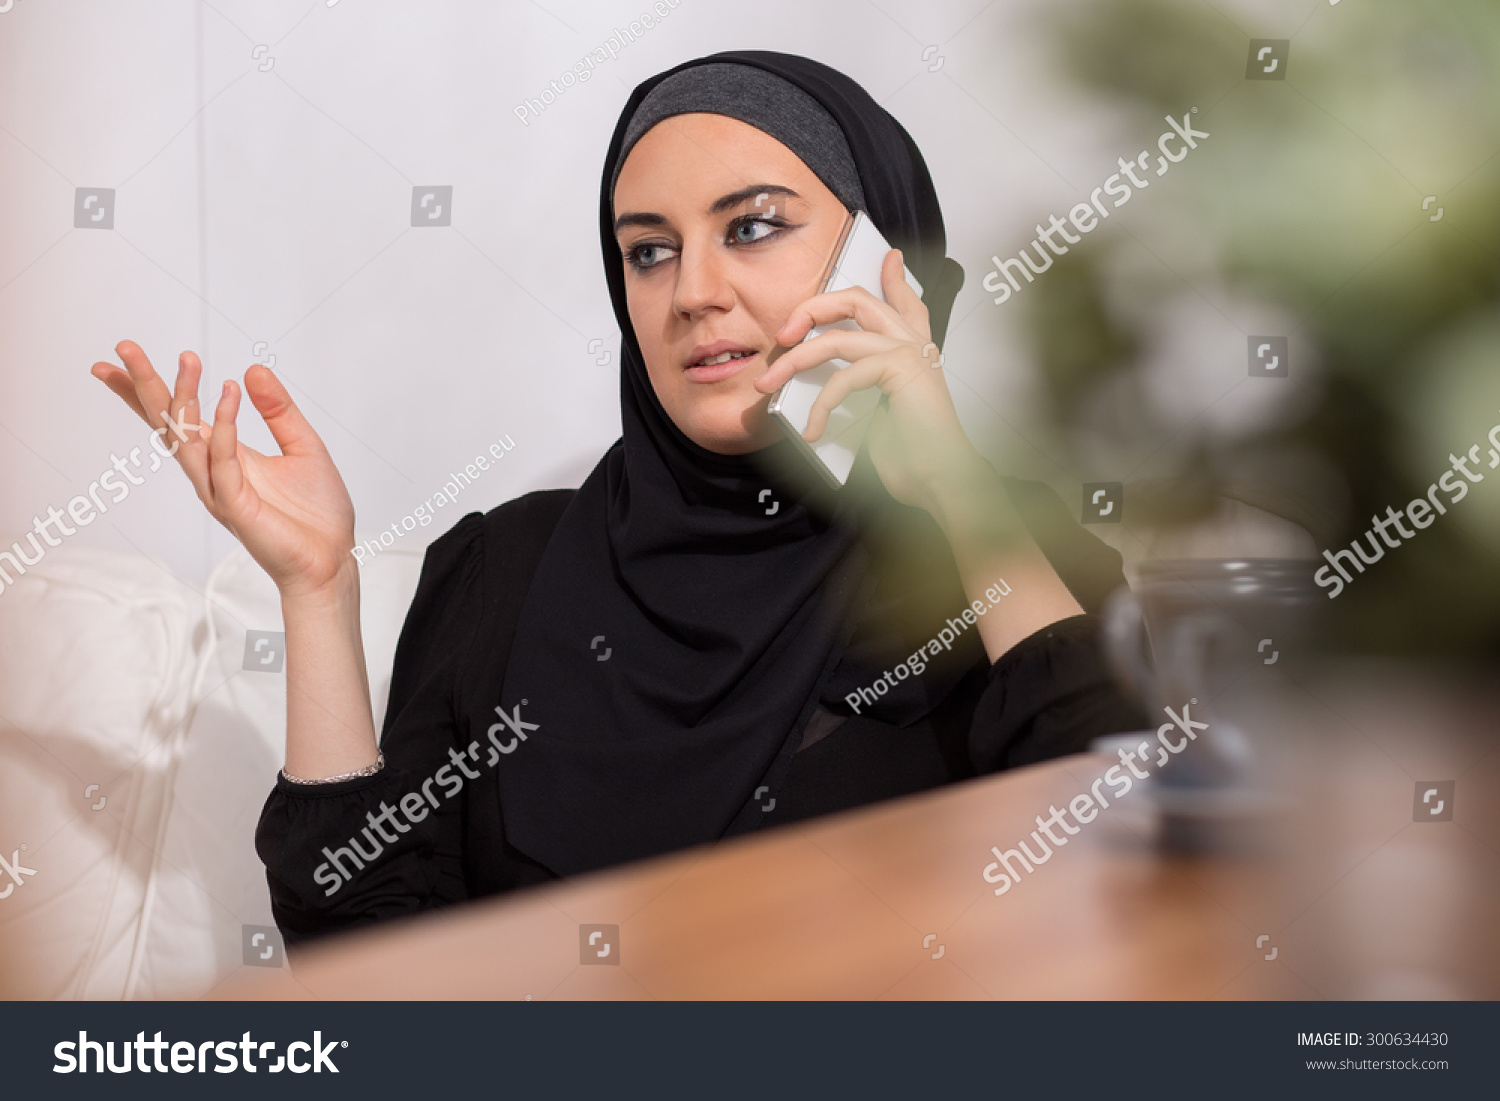 mobile single muslim girls 7 reasons to date a muslim girl hesse kassel april 12  more generally there is a perception that dating a muslim girl is a one way trip to a starring role in some.